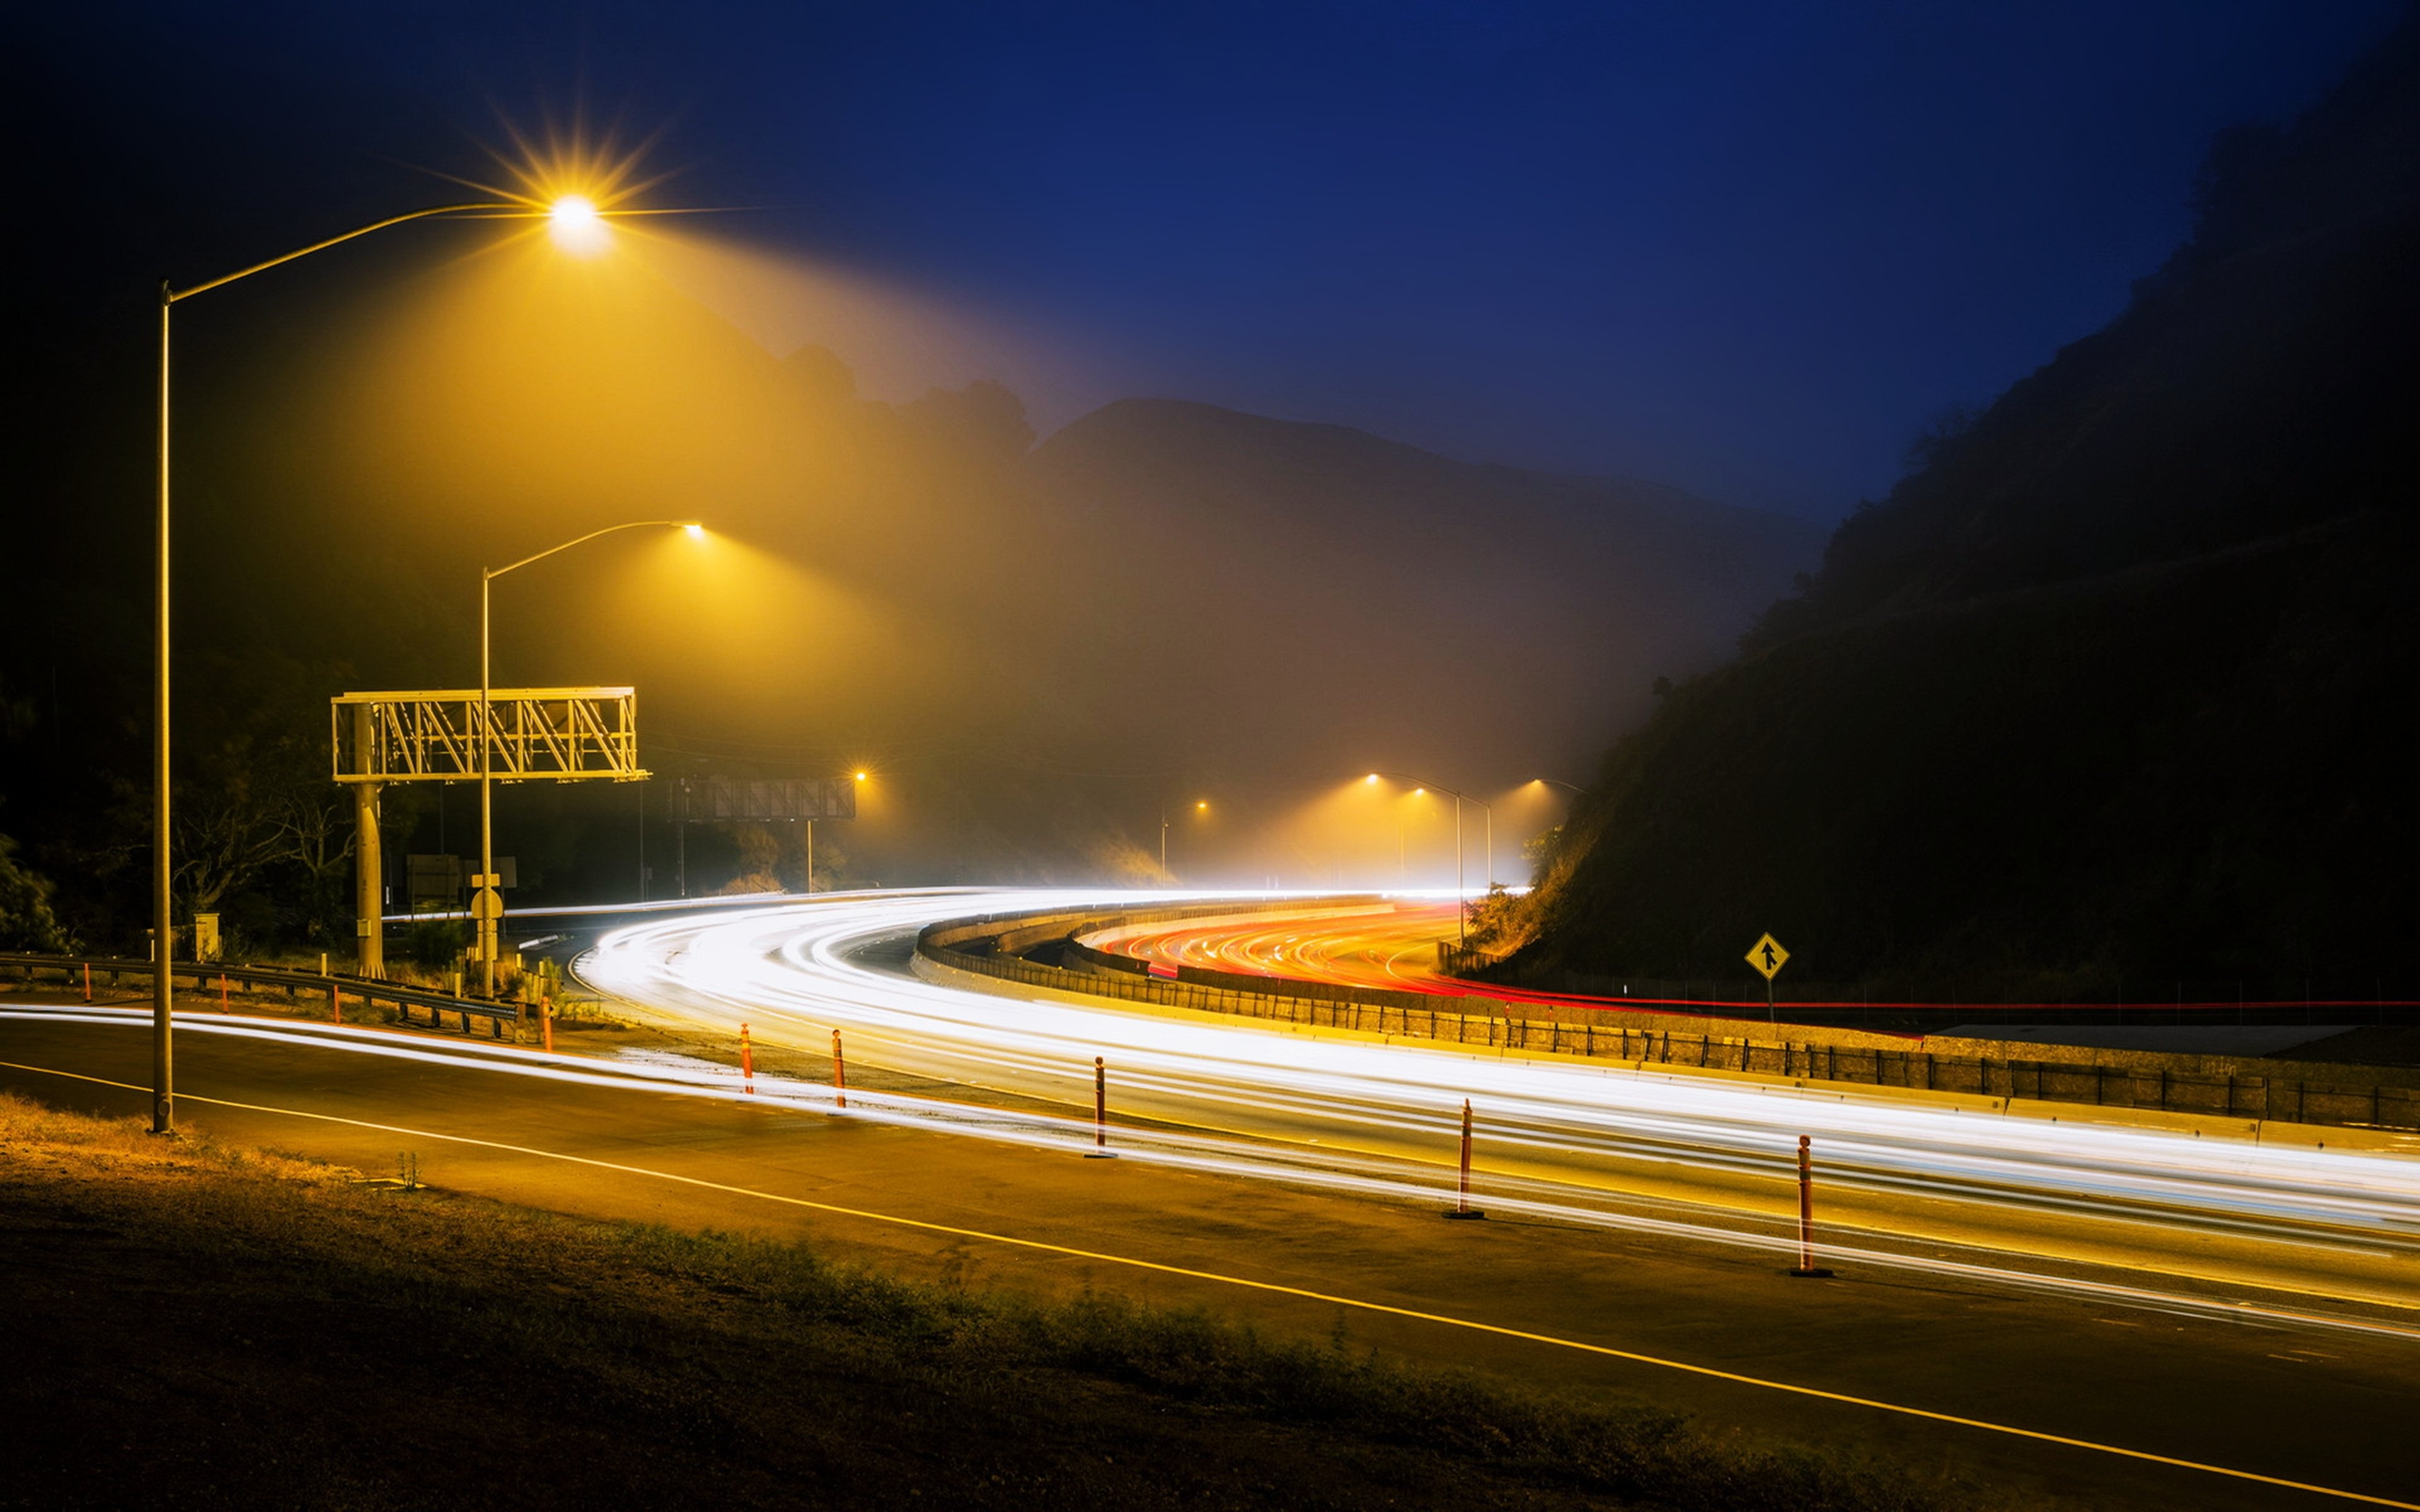 road night fog hills Lamps way path lights landscapes nature earth